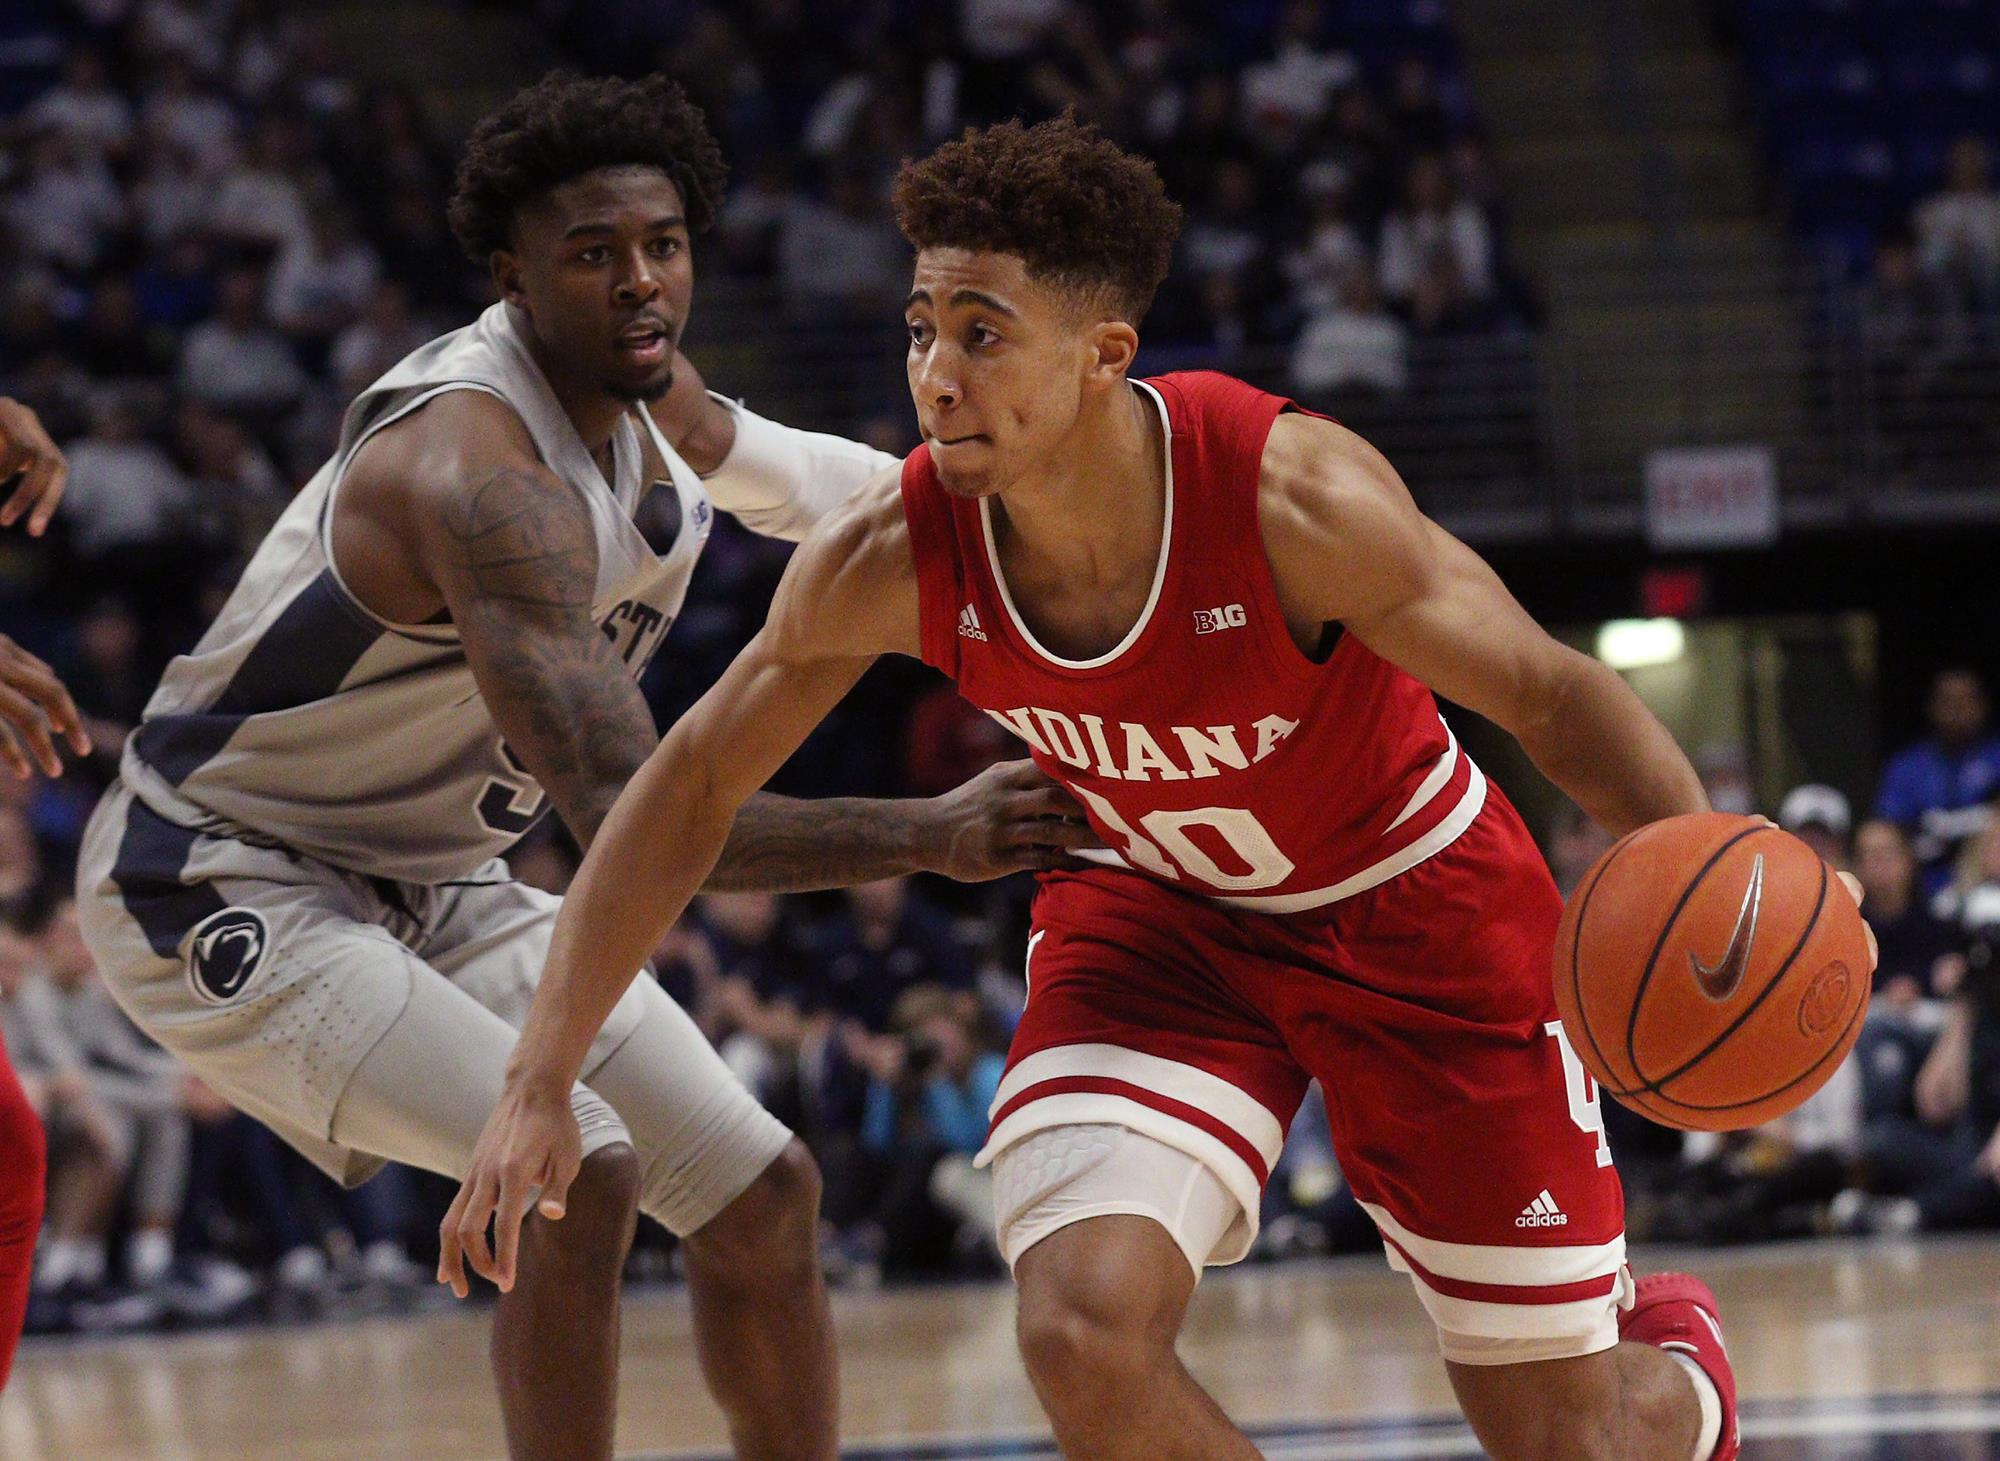 indiana a big ten unbeaten after surviving at penn state - indiana